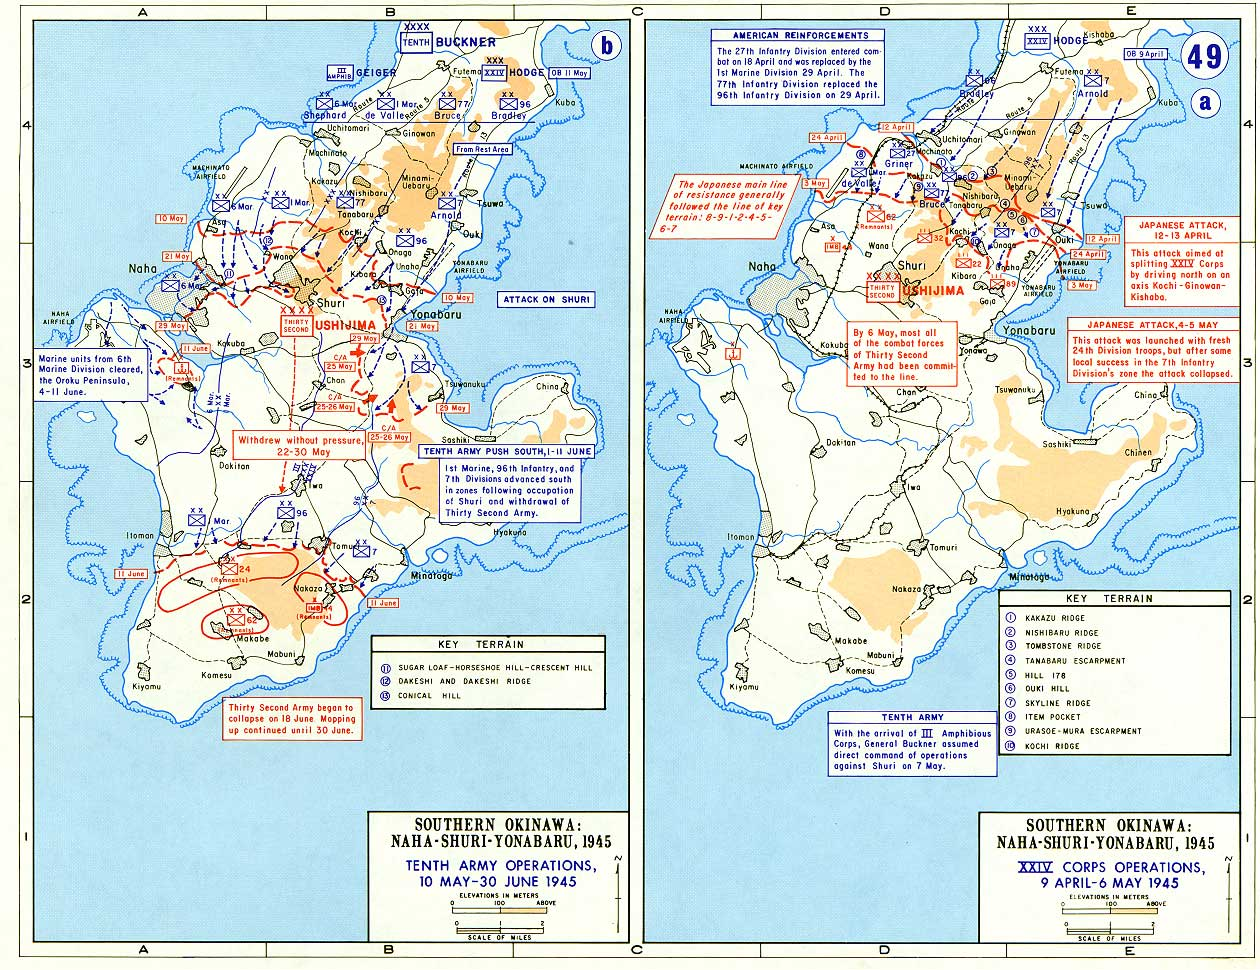 Ivo jima maps historical resources about the second world war invasion of iwo jima and okinawa 9 april 30 june 1945 gumiabroncs